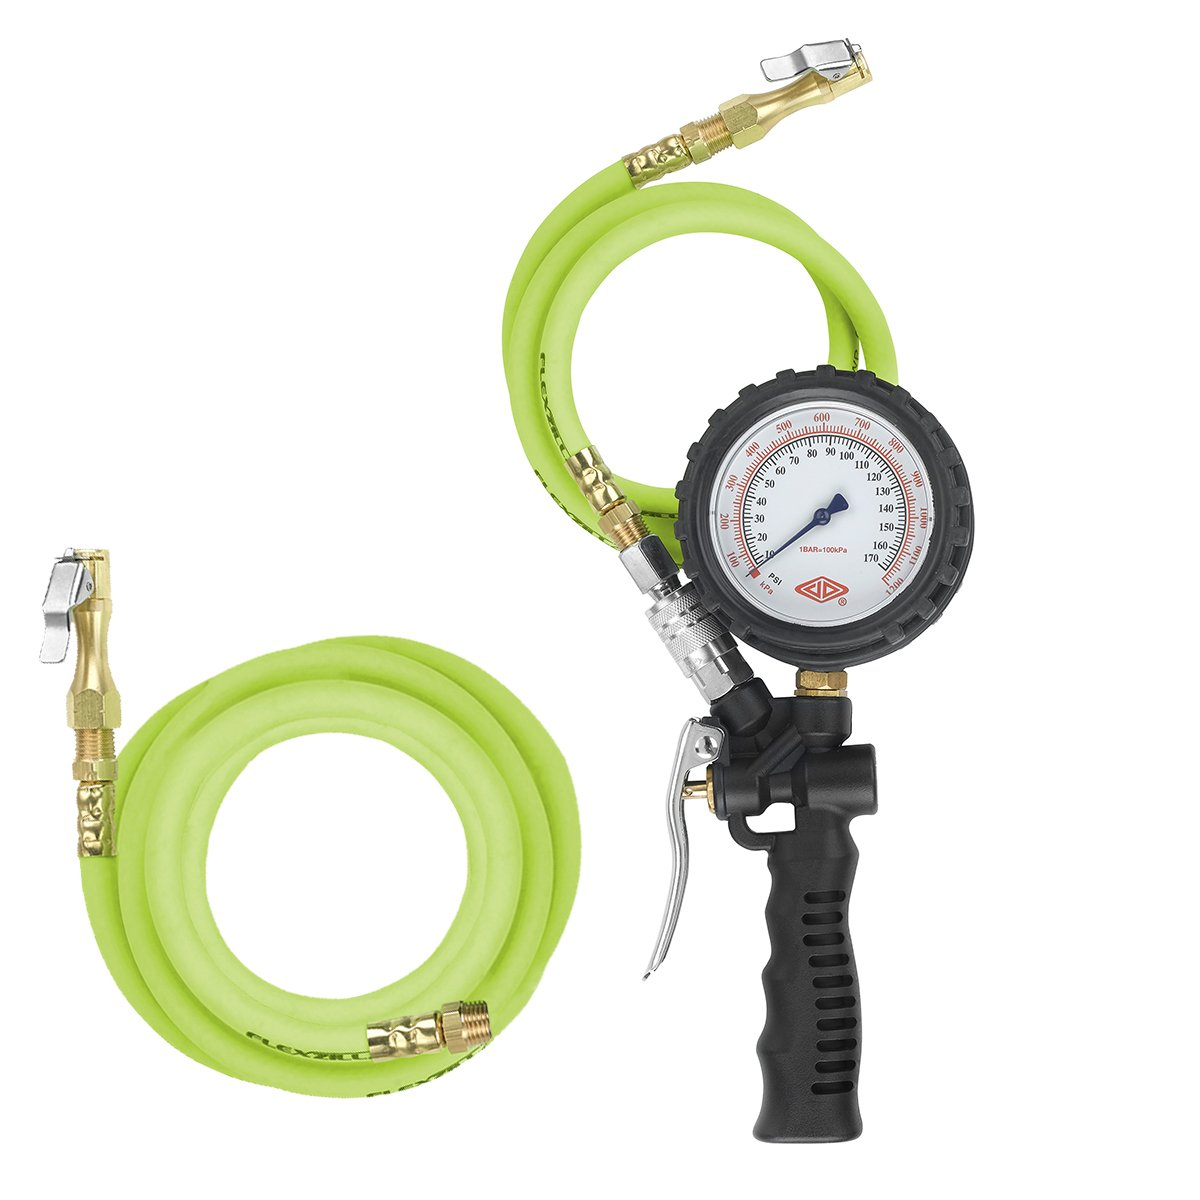 Flexzilla Combo Inflator Kit with 3 ft. and 15 ft. Quick Connect Hose, Lock-On Chuck (0-170 PSI) - AL2025FZ-2